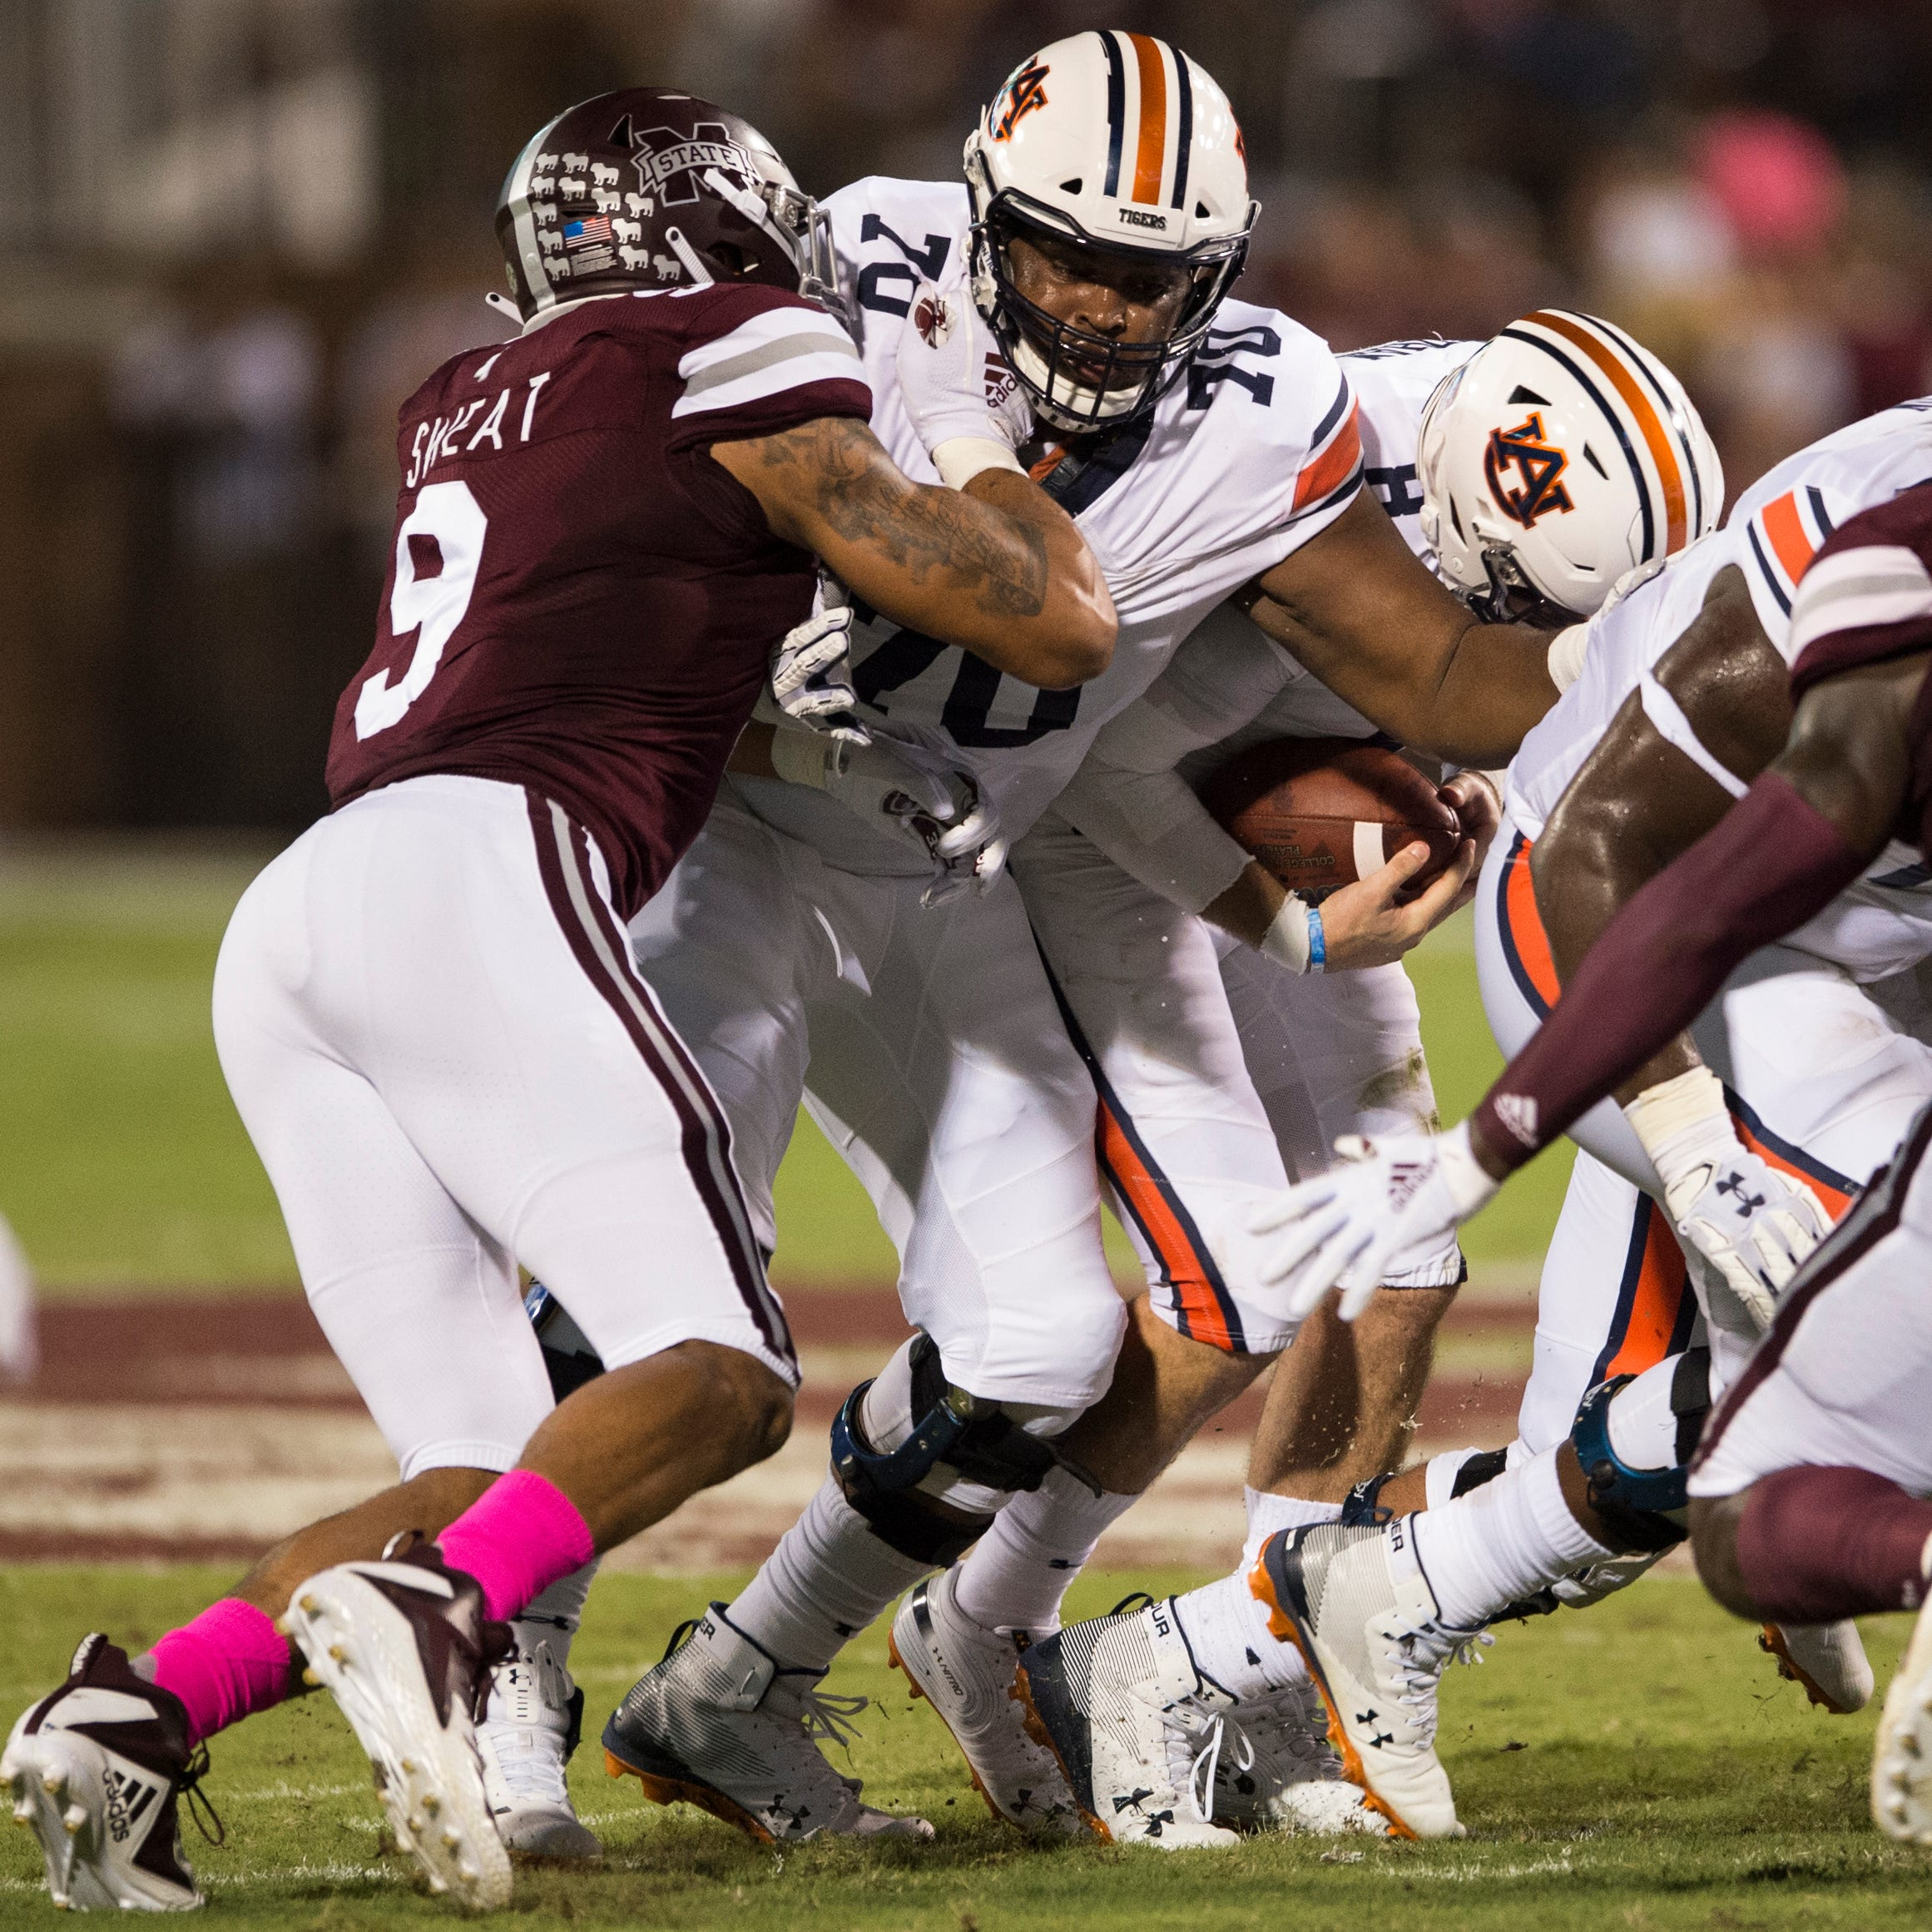 Former 5-star Calvin Ashley intends to transfer, further decreasing Auburn's offensive line depth